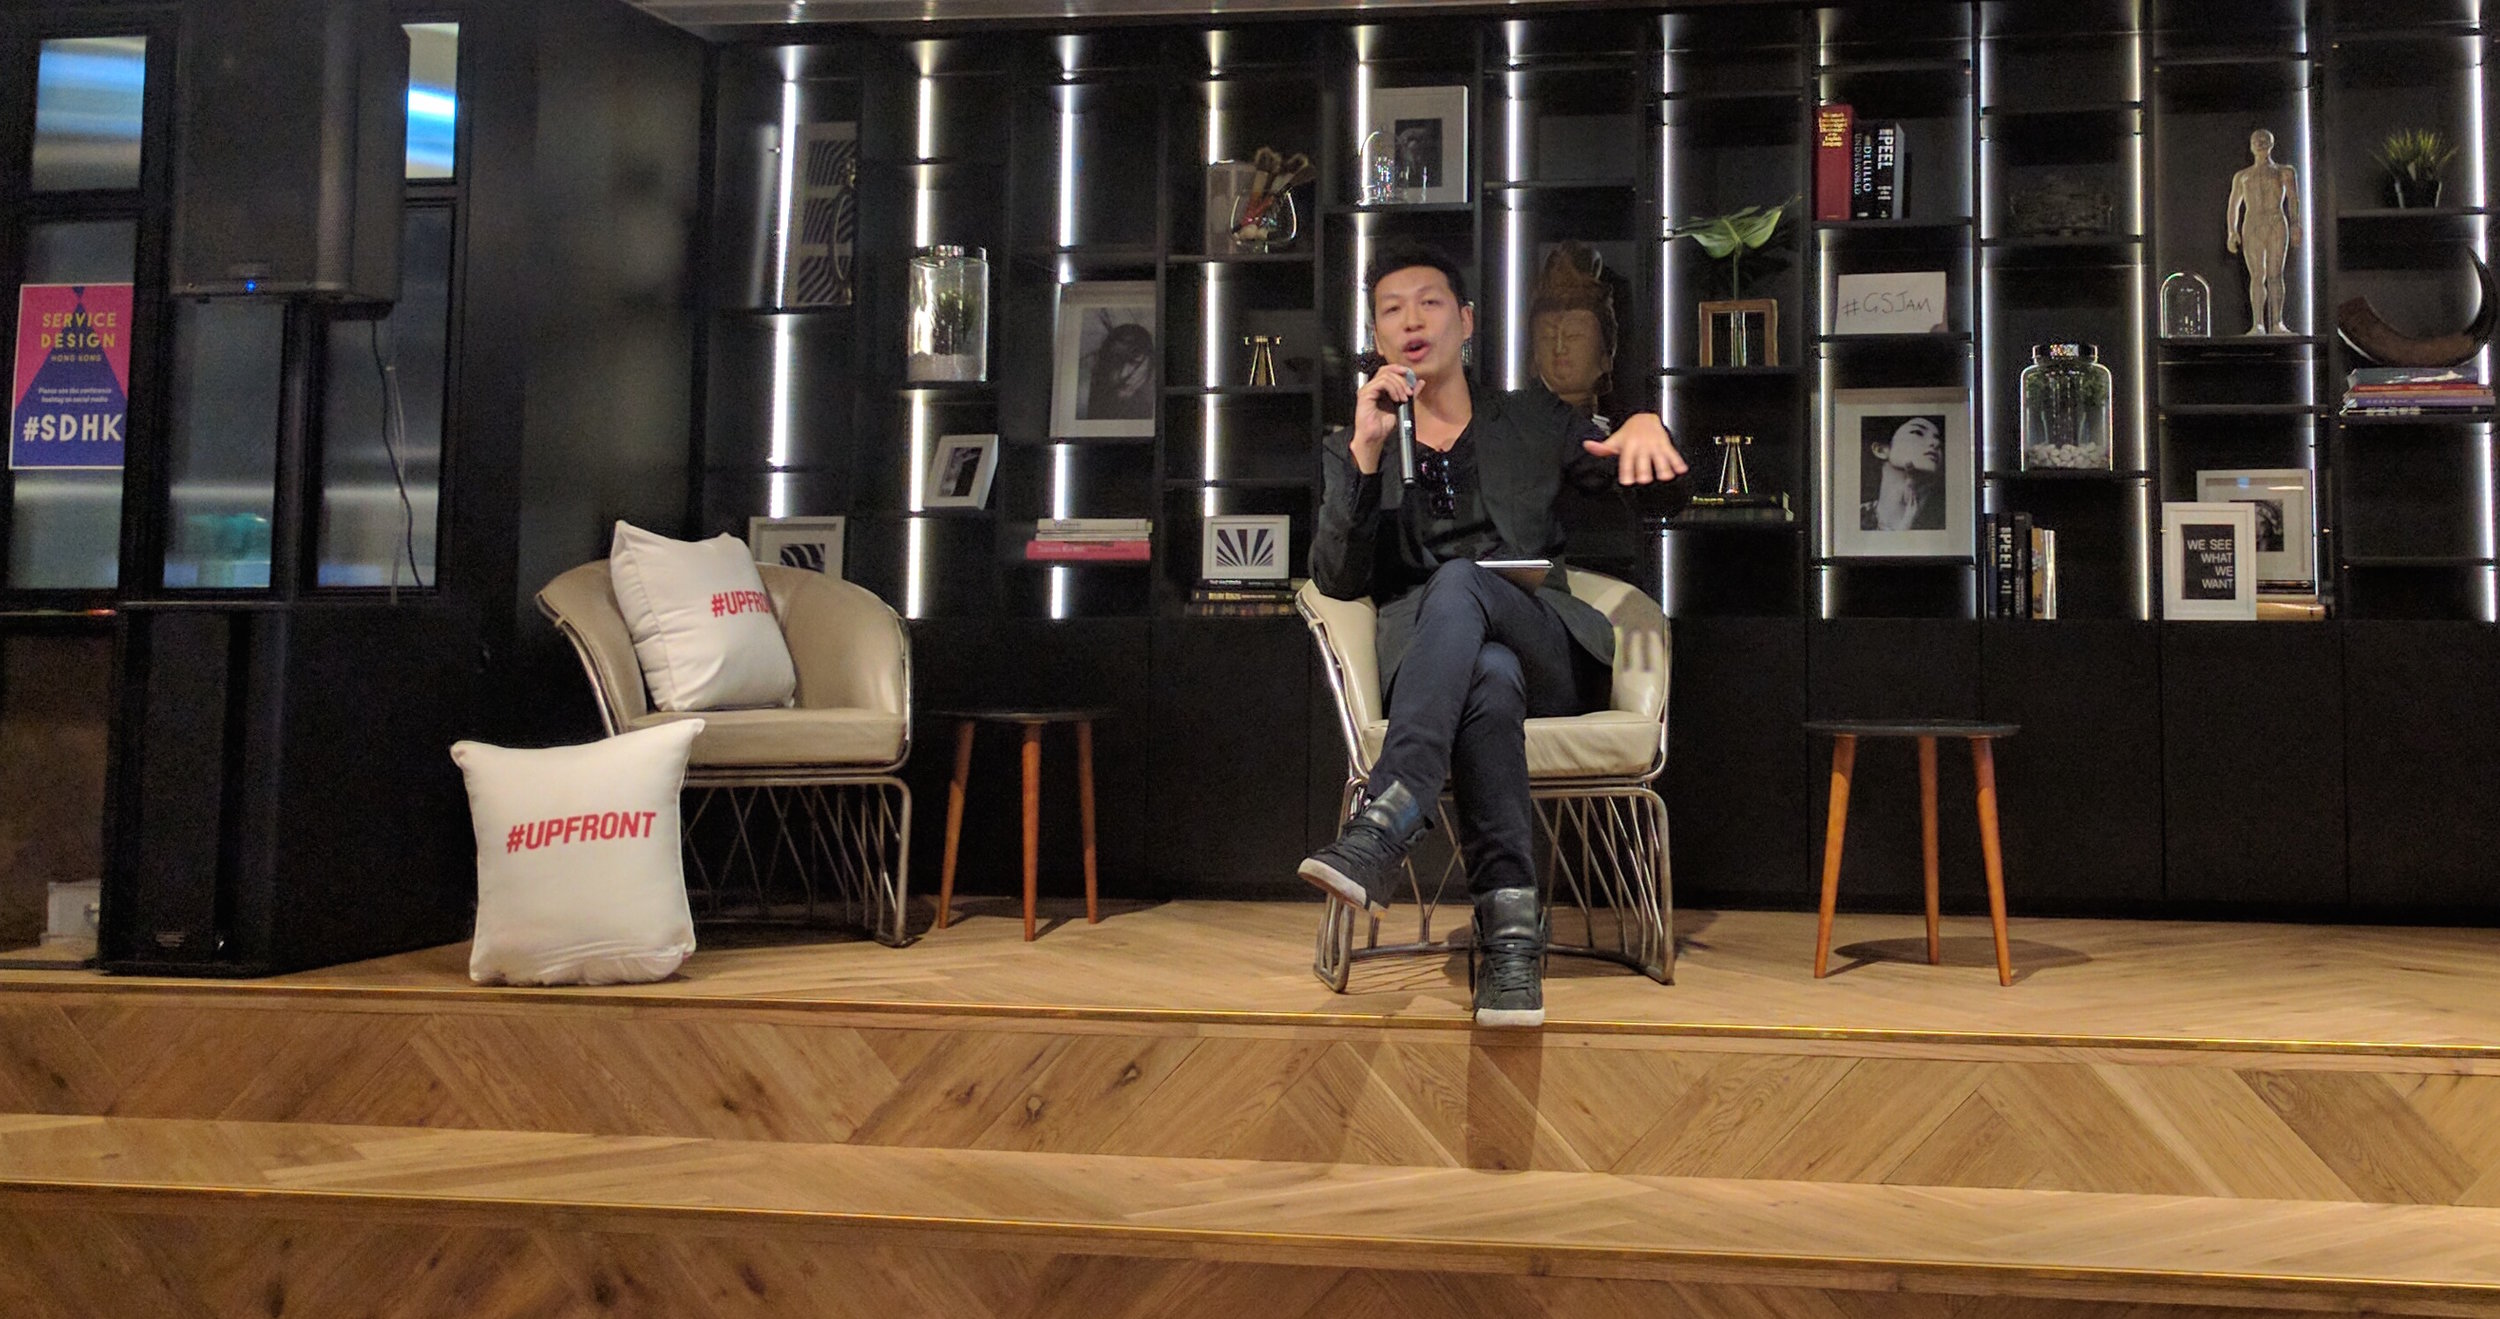 Alvin Yip invited the audience to change Hong Kong by design